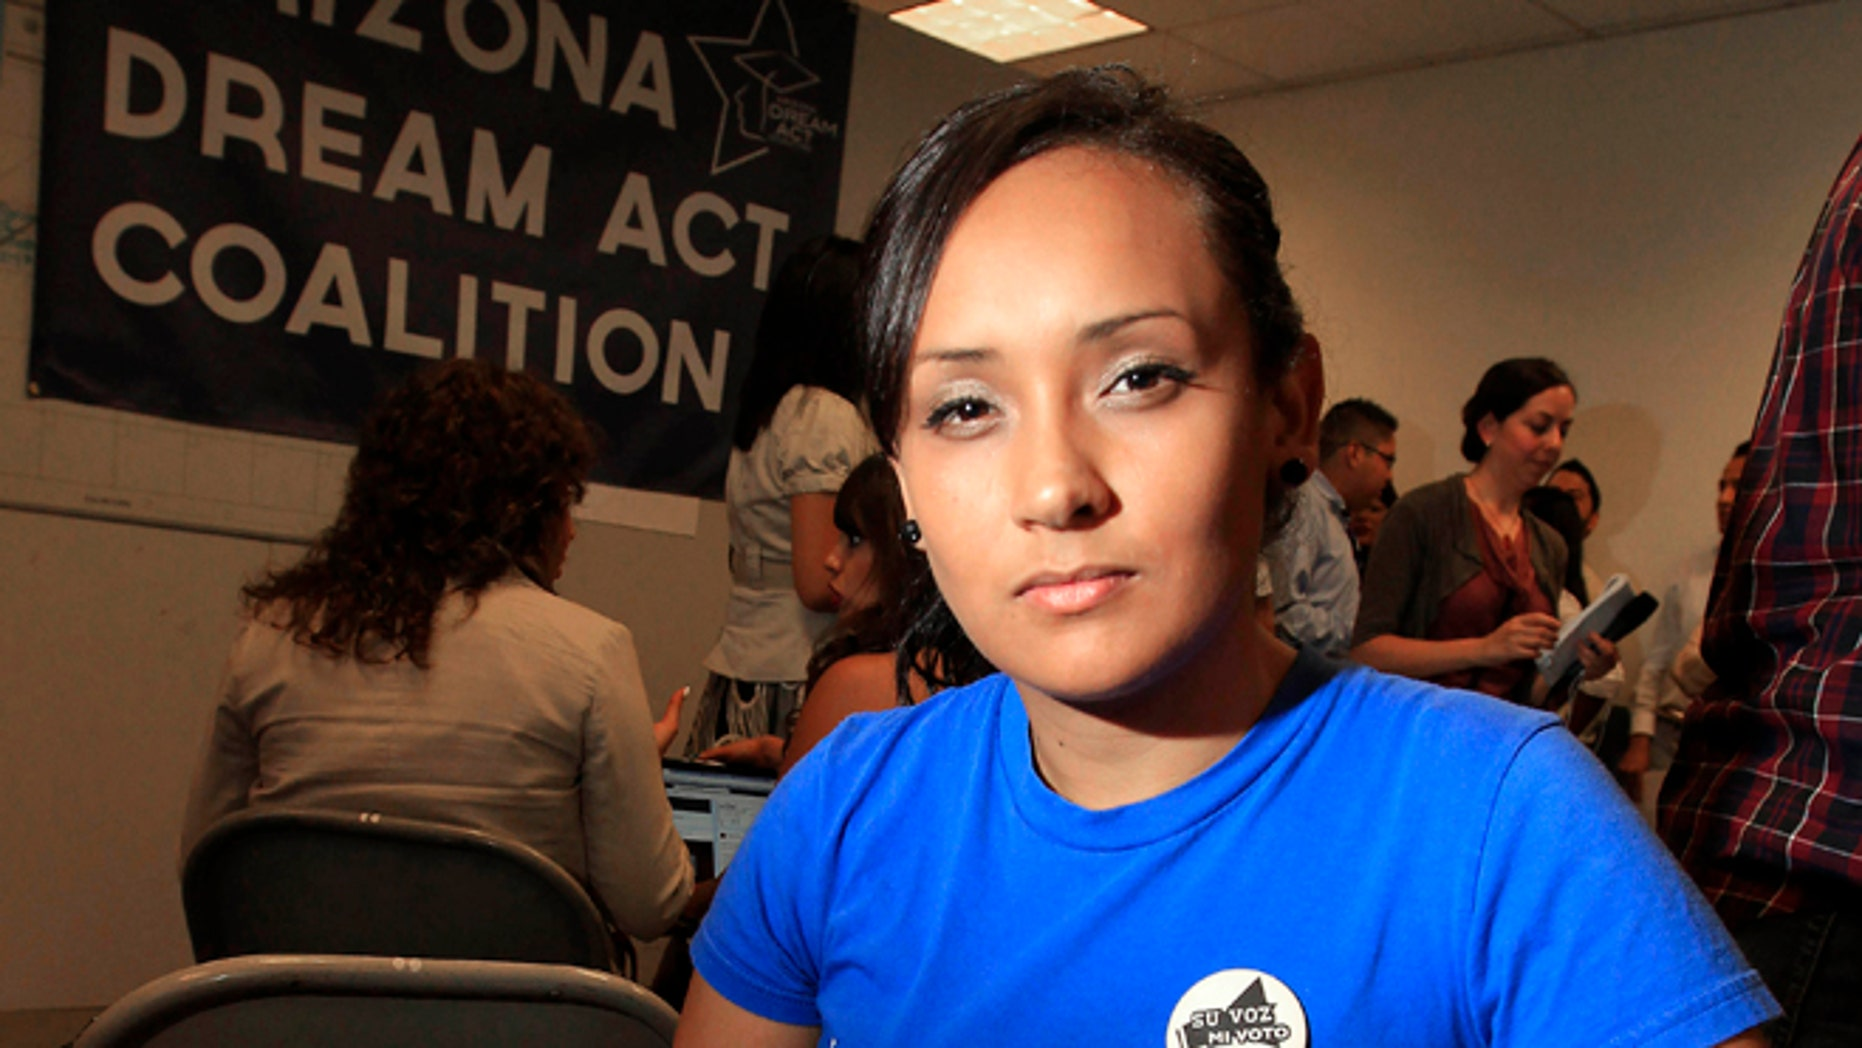 Erika Andiola poses for a portrait at a site where people line up to get guidance on Deferred Action.